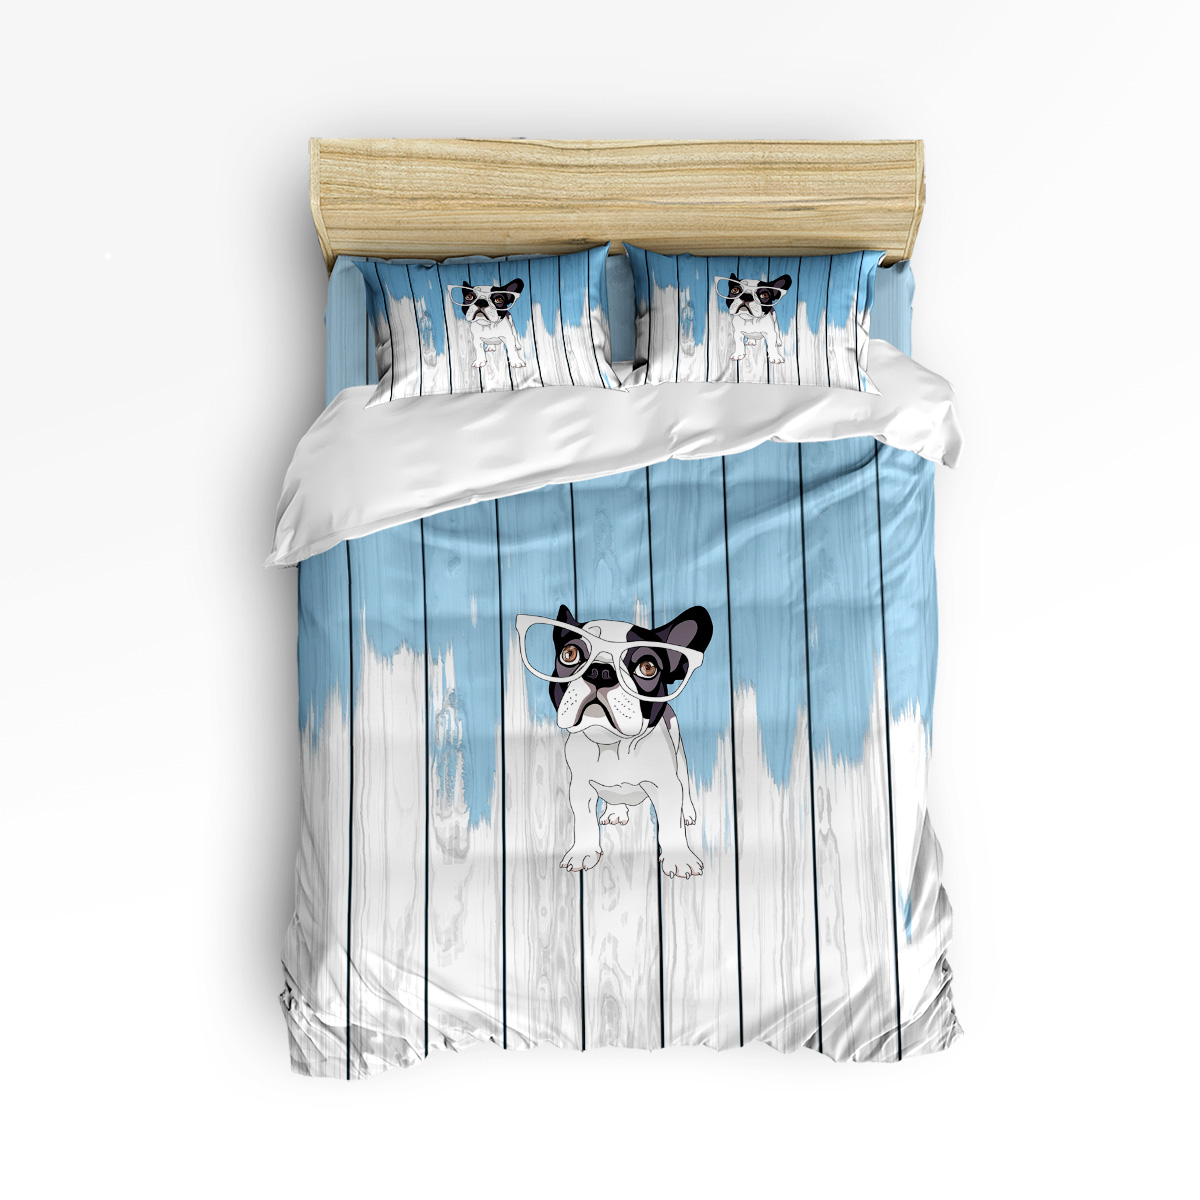 Arts 3d Doctor Dog Cute Print 3 Pcs 4 Pcs Bedding Set Home Decor Duvet Cover Set Comforter Bedding Sets Adult Kids Free ShippingArts 3d Doctor Dog Cute Print 3 Pcs 4 Pcs Bedding Set Home Decor Duvet Cover Set Comforter Bedding Sets Adult Kids Free Shipping